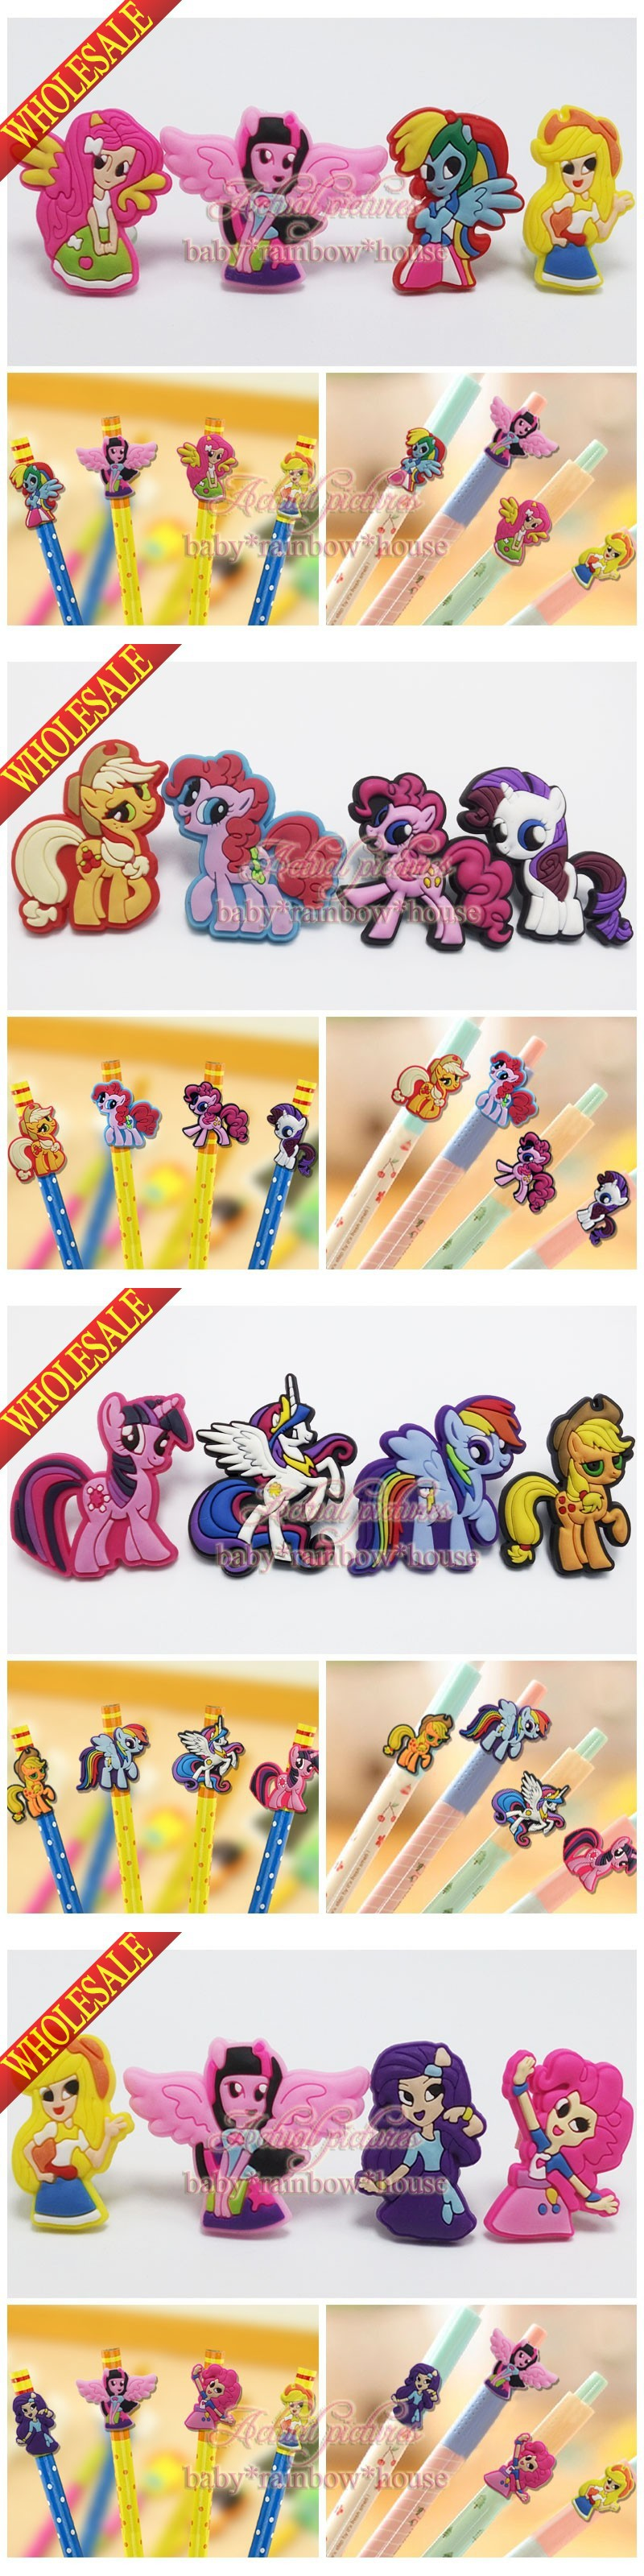 100pcs My Little Ponies Pencil topper pencil cap case School office Stationery Kids Party Gifts $22